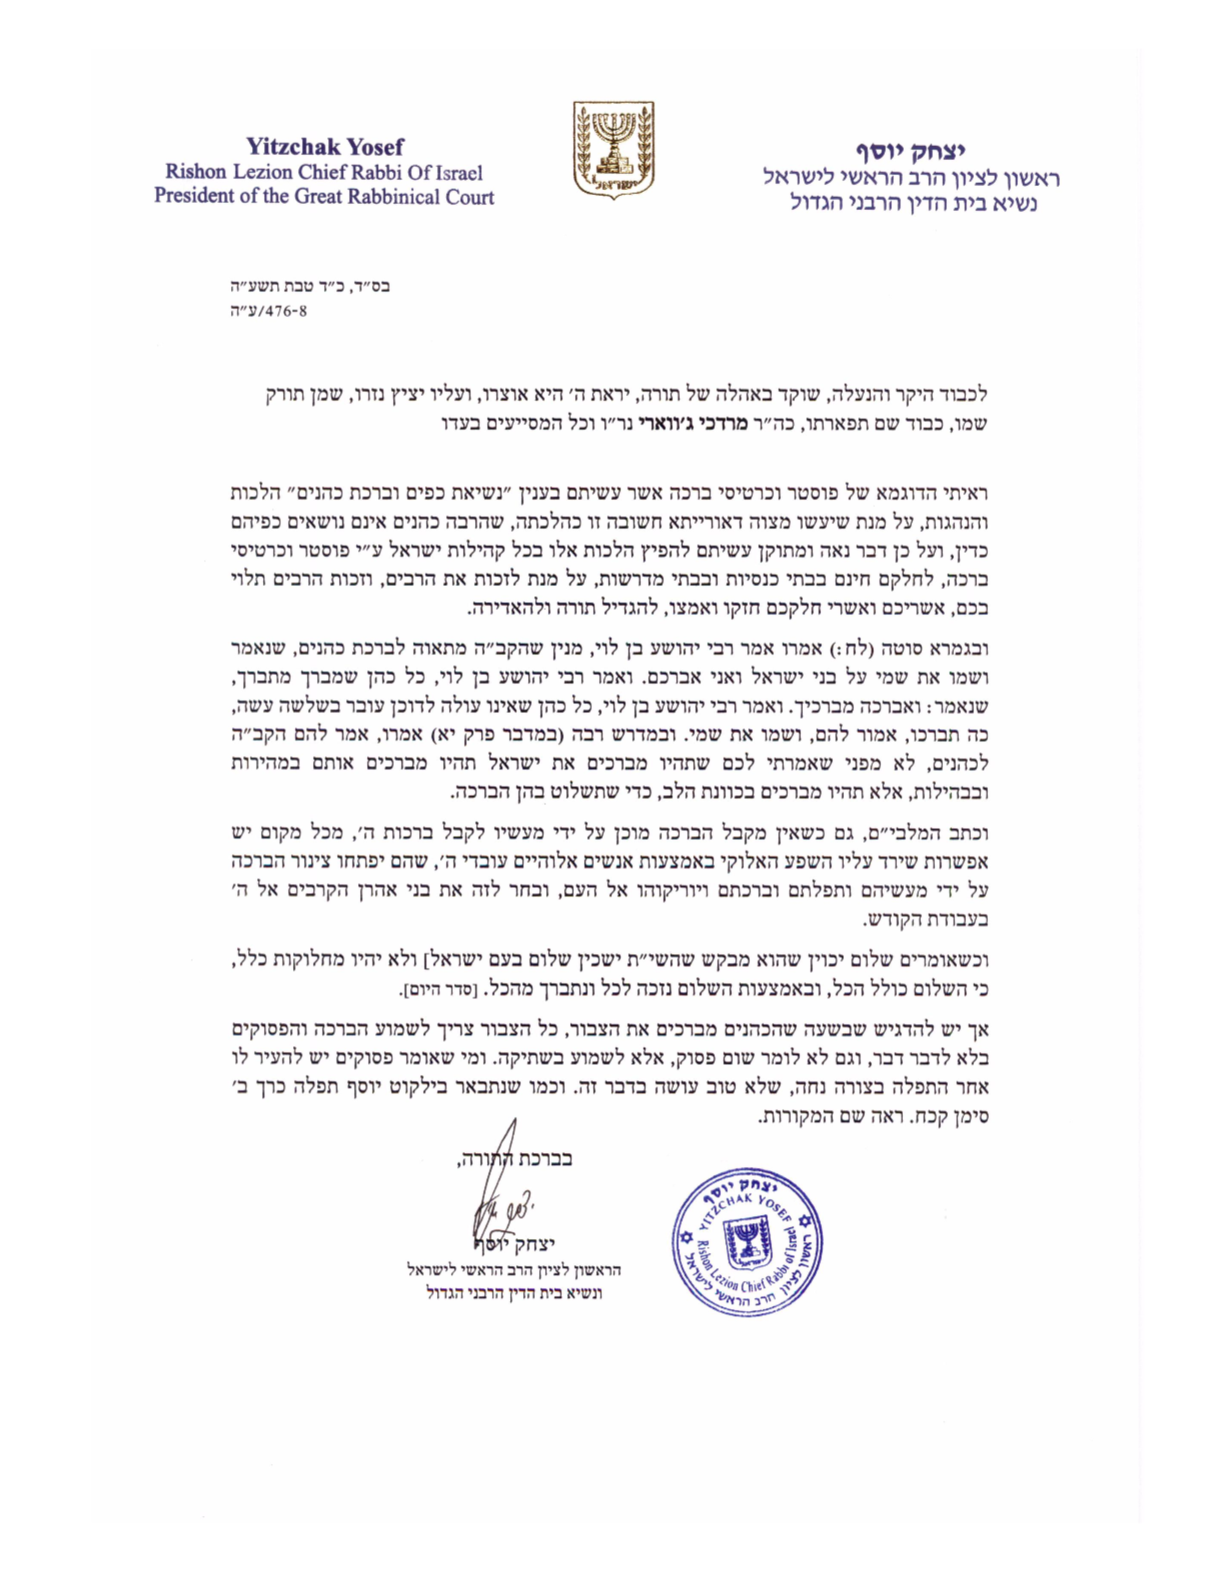 Rav Yitzchak Yosef's Haskama to the Birkat Kohanim Poster